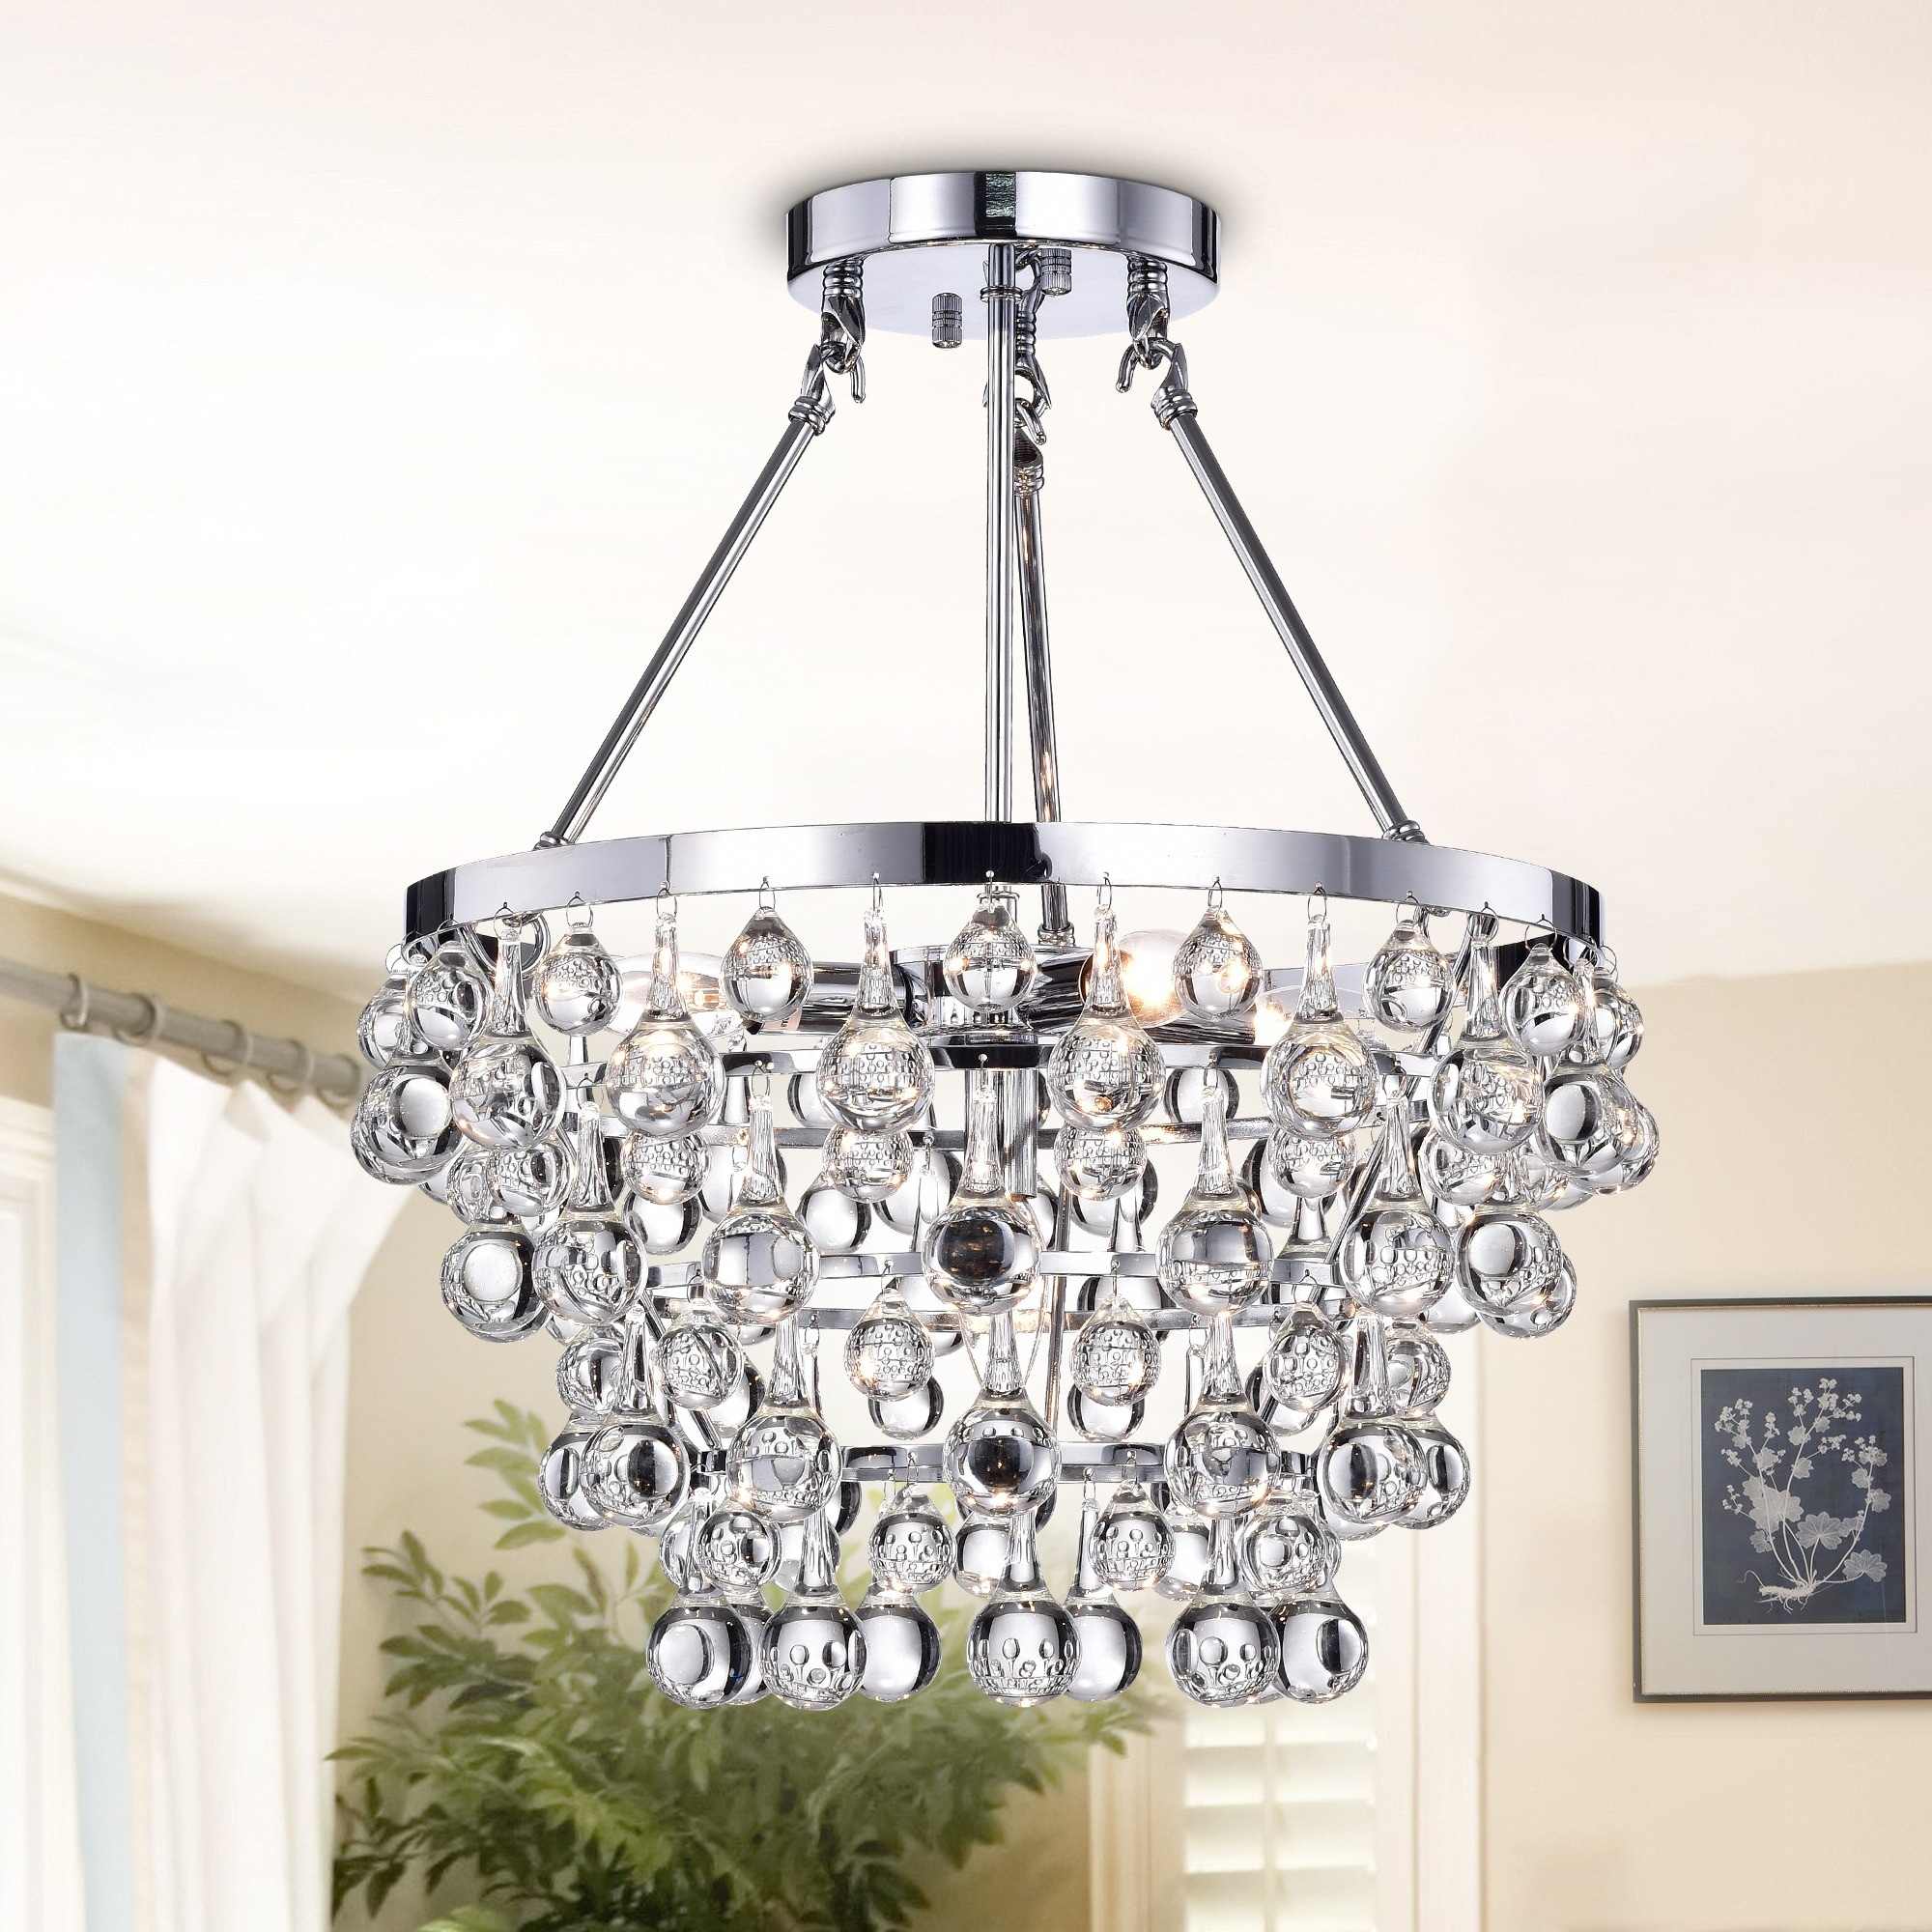 Crystal grand chandelier free shipping today overstock 14983235 aloadofball Gallery